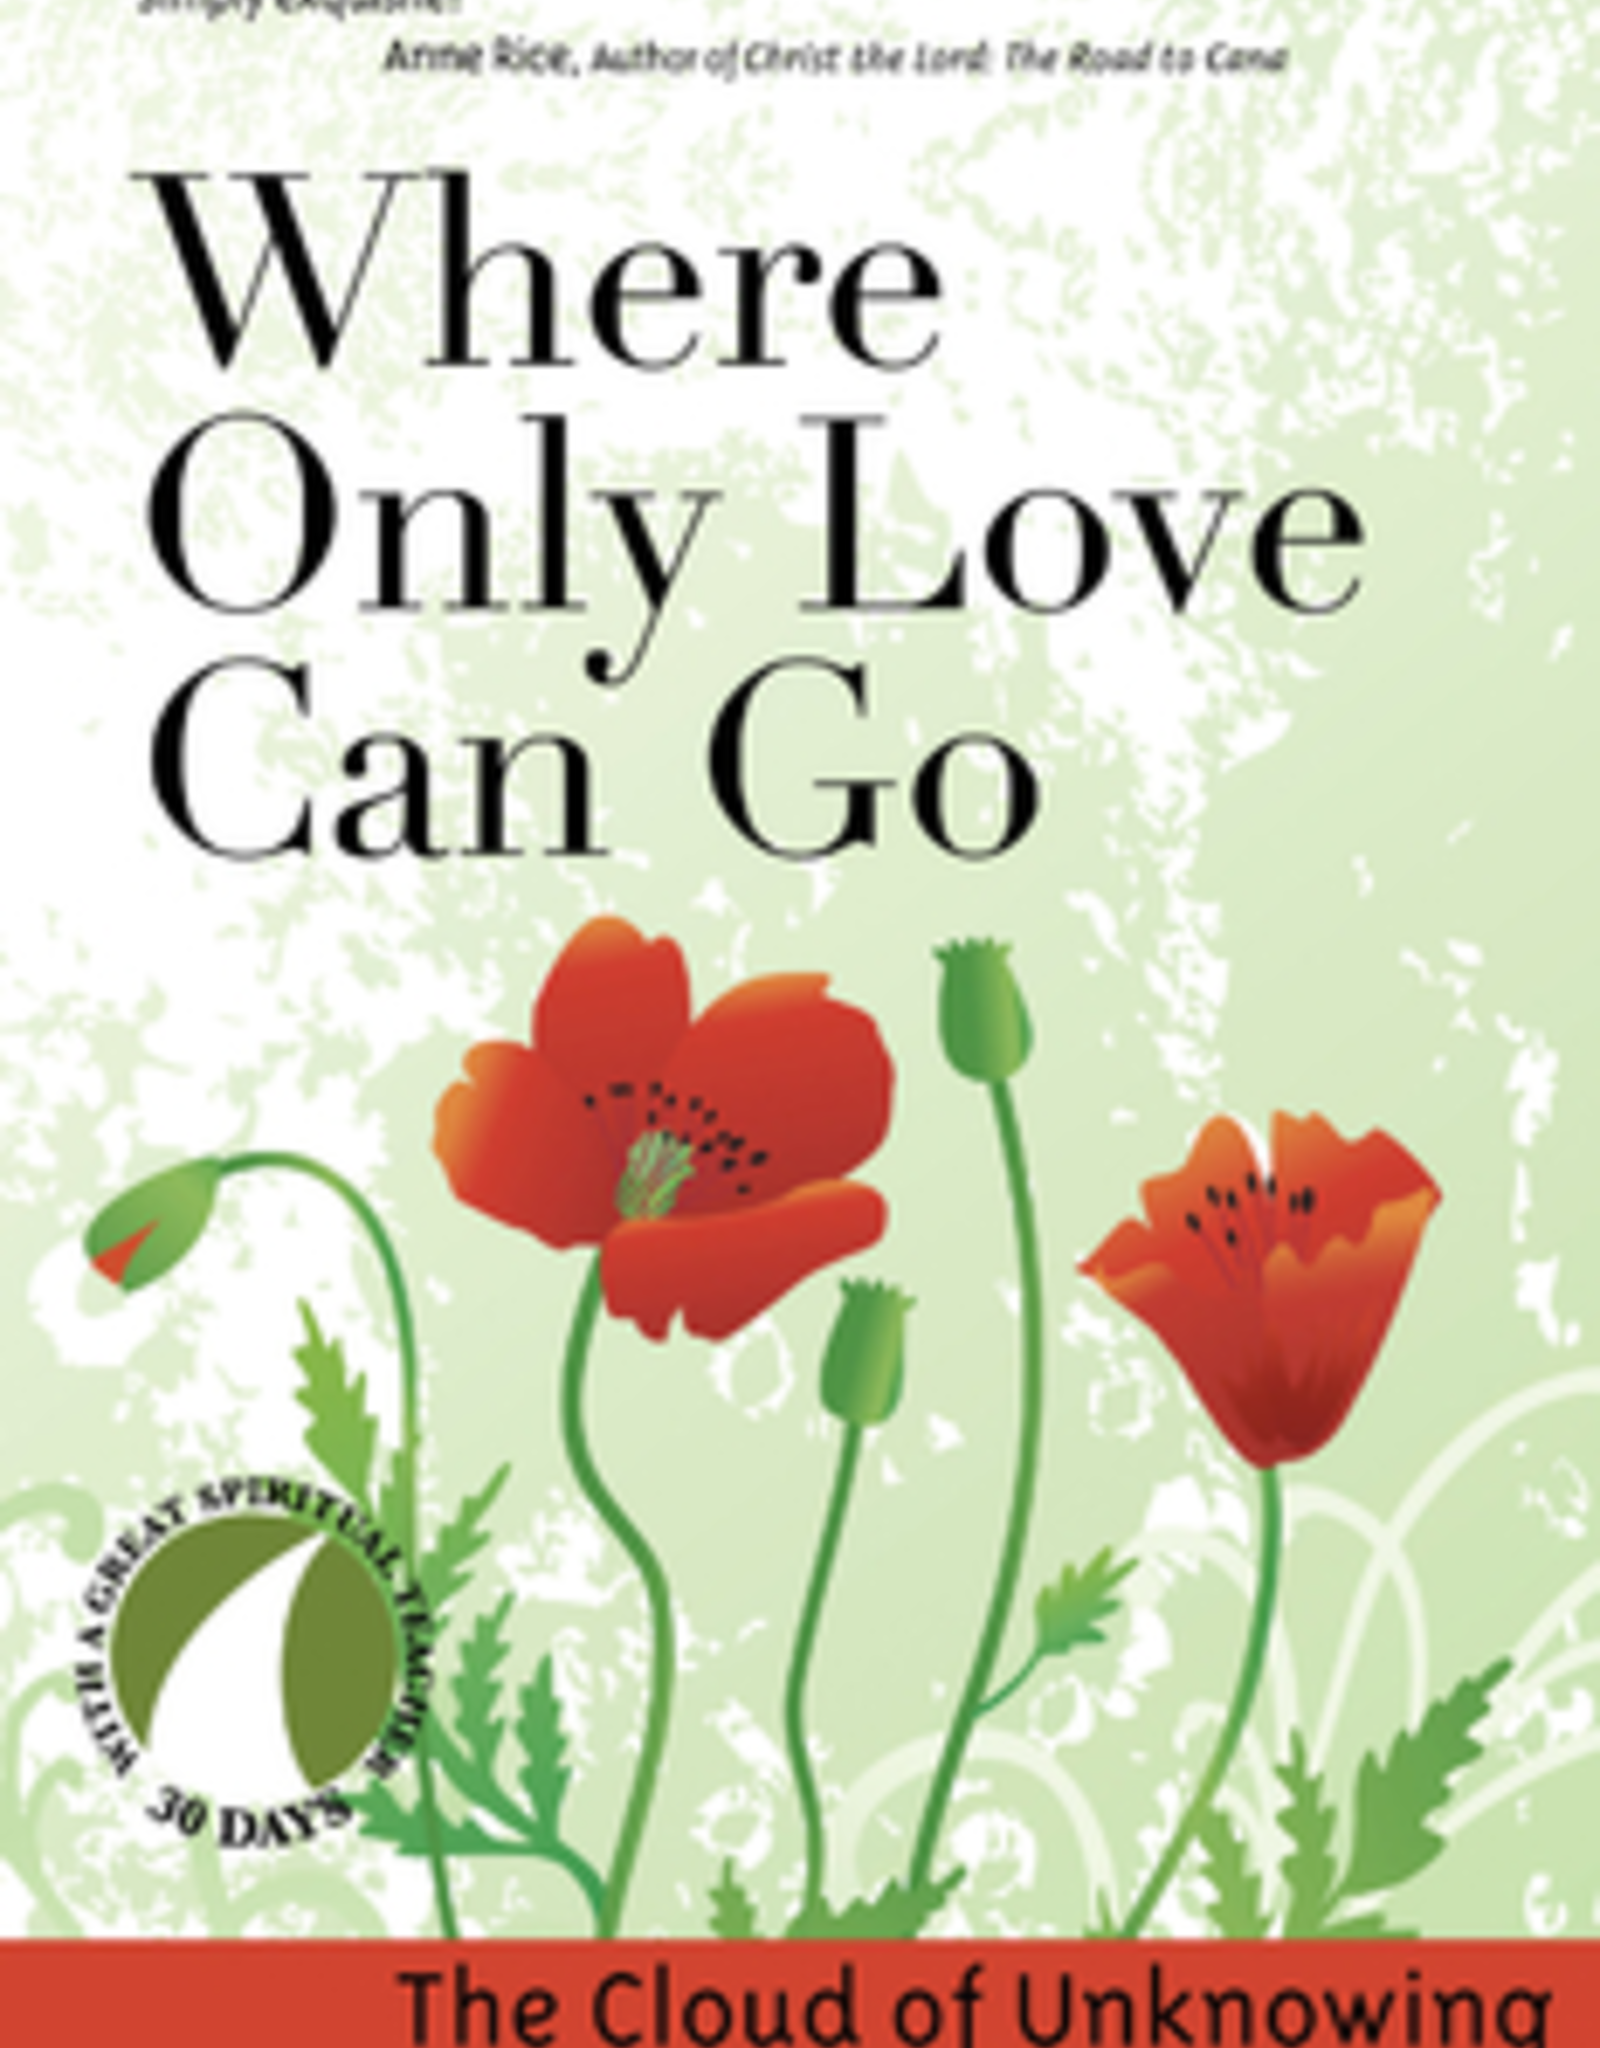 Ave Maria Press Where Only Love Can Go, by the Author of the Cloud of Unknowing, edited by John Kirvan